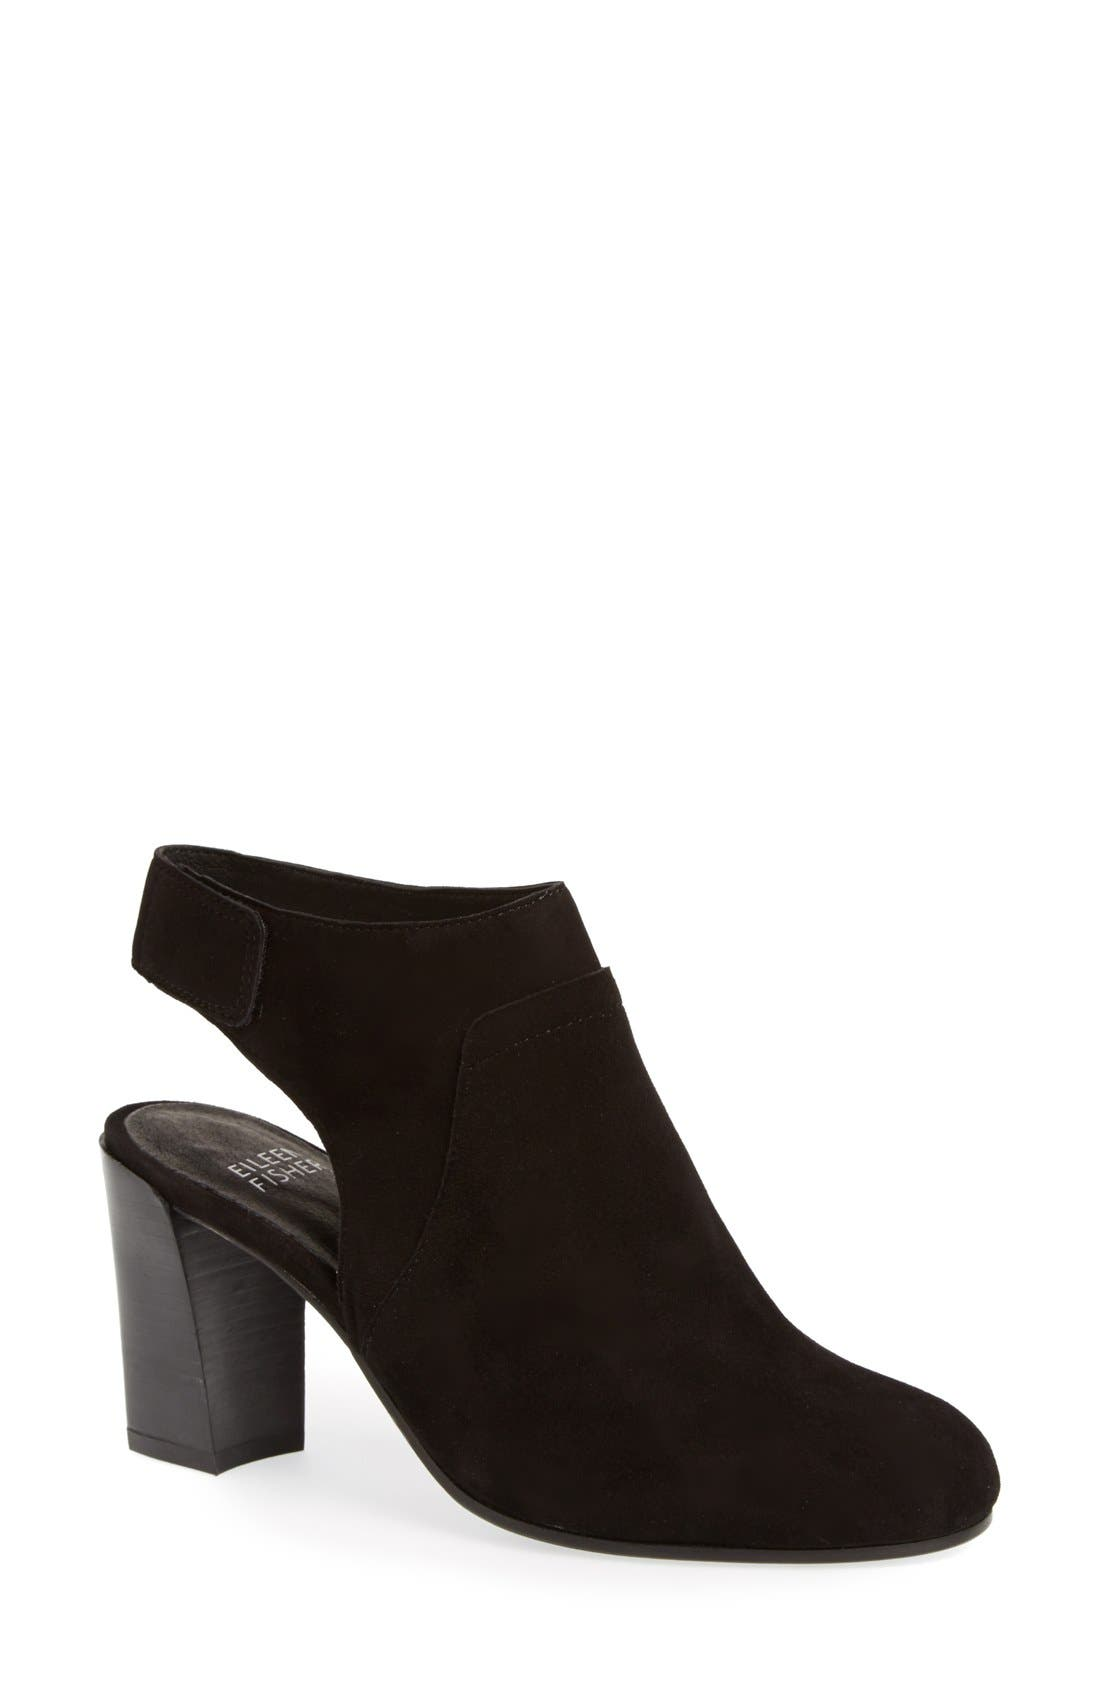 Alternate Image 1 Selected - Eileen Fisher 'Ideal' Cutout Bootie (Women) (Online Only)